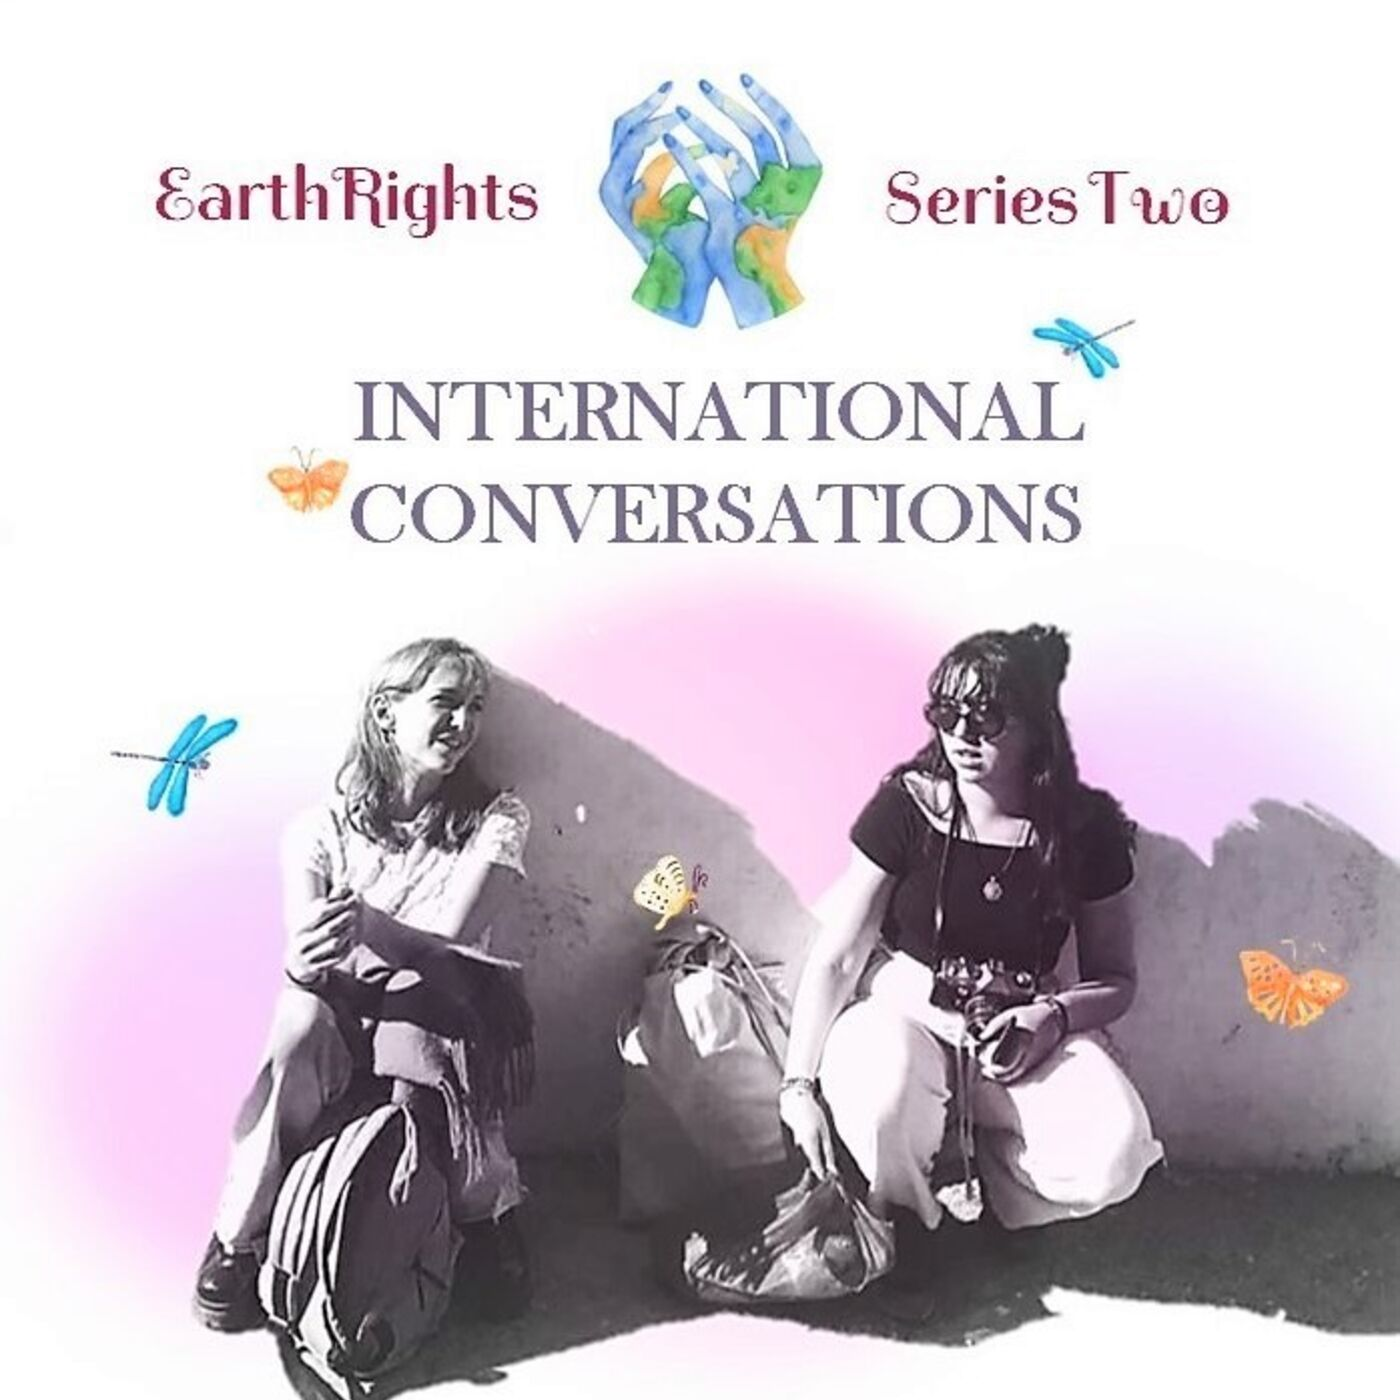 Introduction to EarthRights Series Two